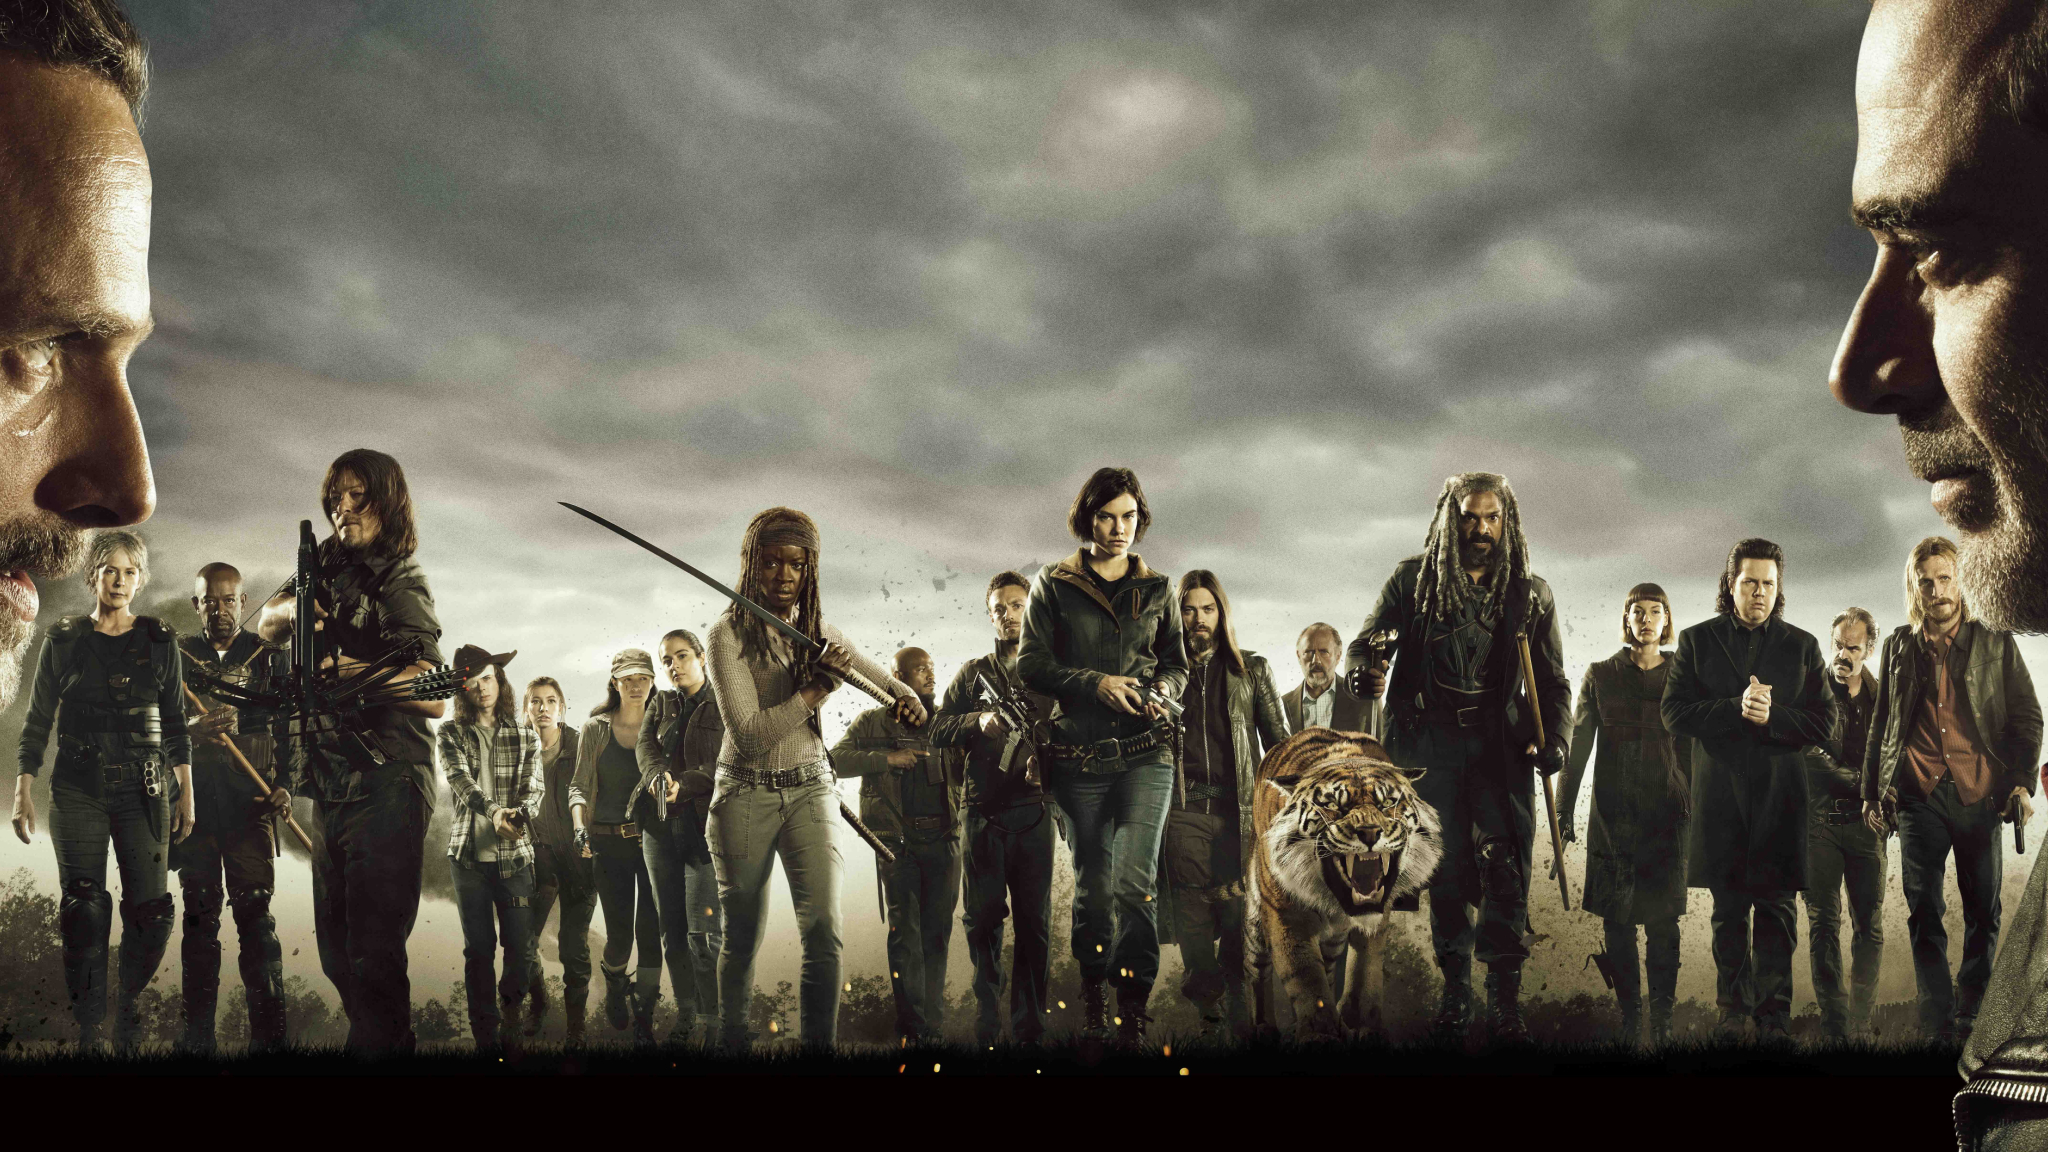 Video And Tv Cast For Samsung >> The Walking Dead Cast Poster, HD 4K Wallpaper